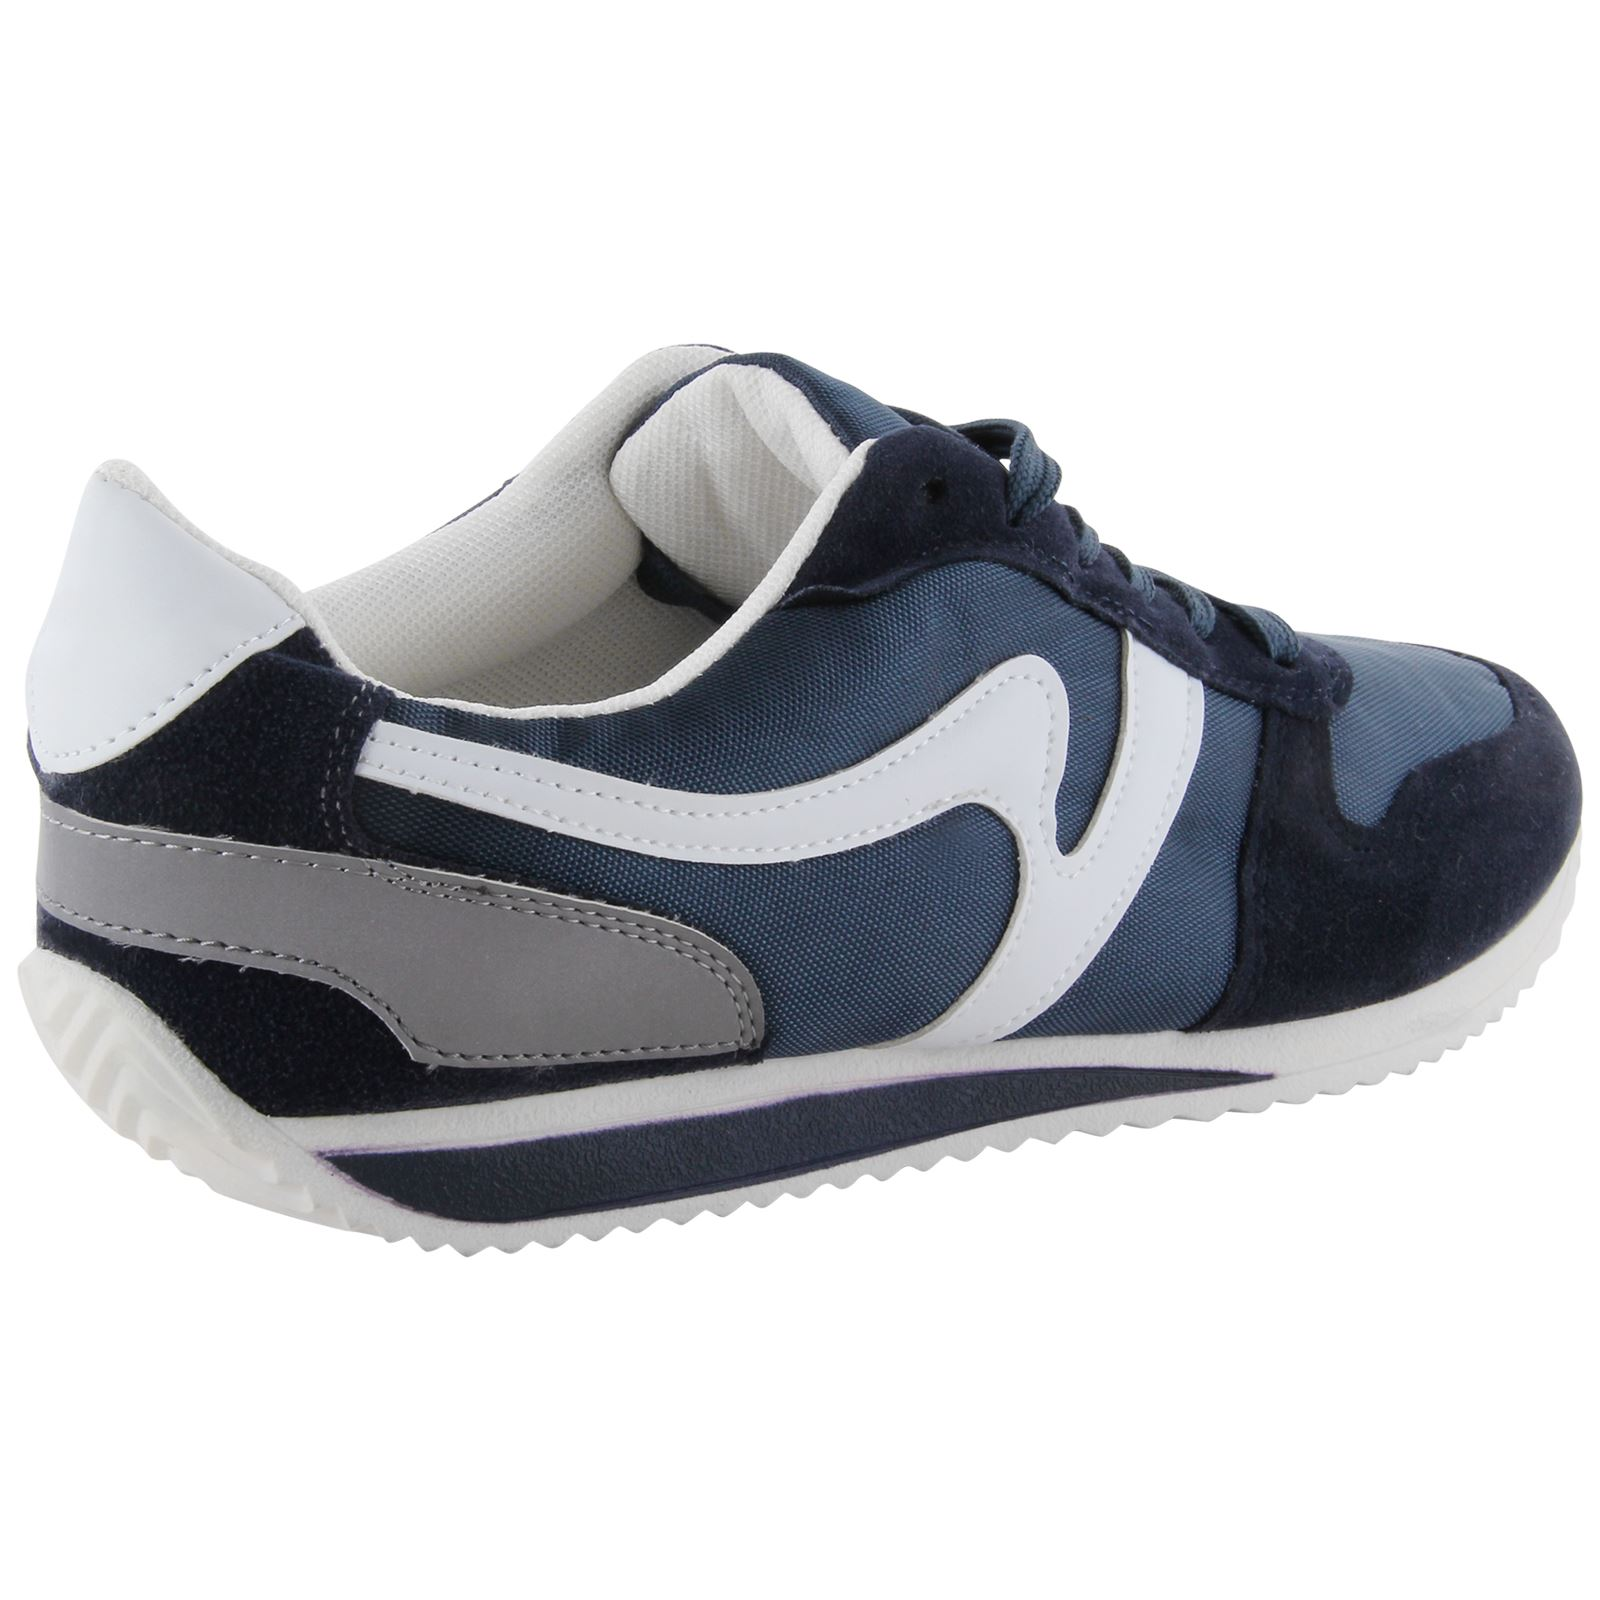 mens casual retro school fashion trainers lace up